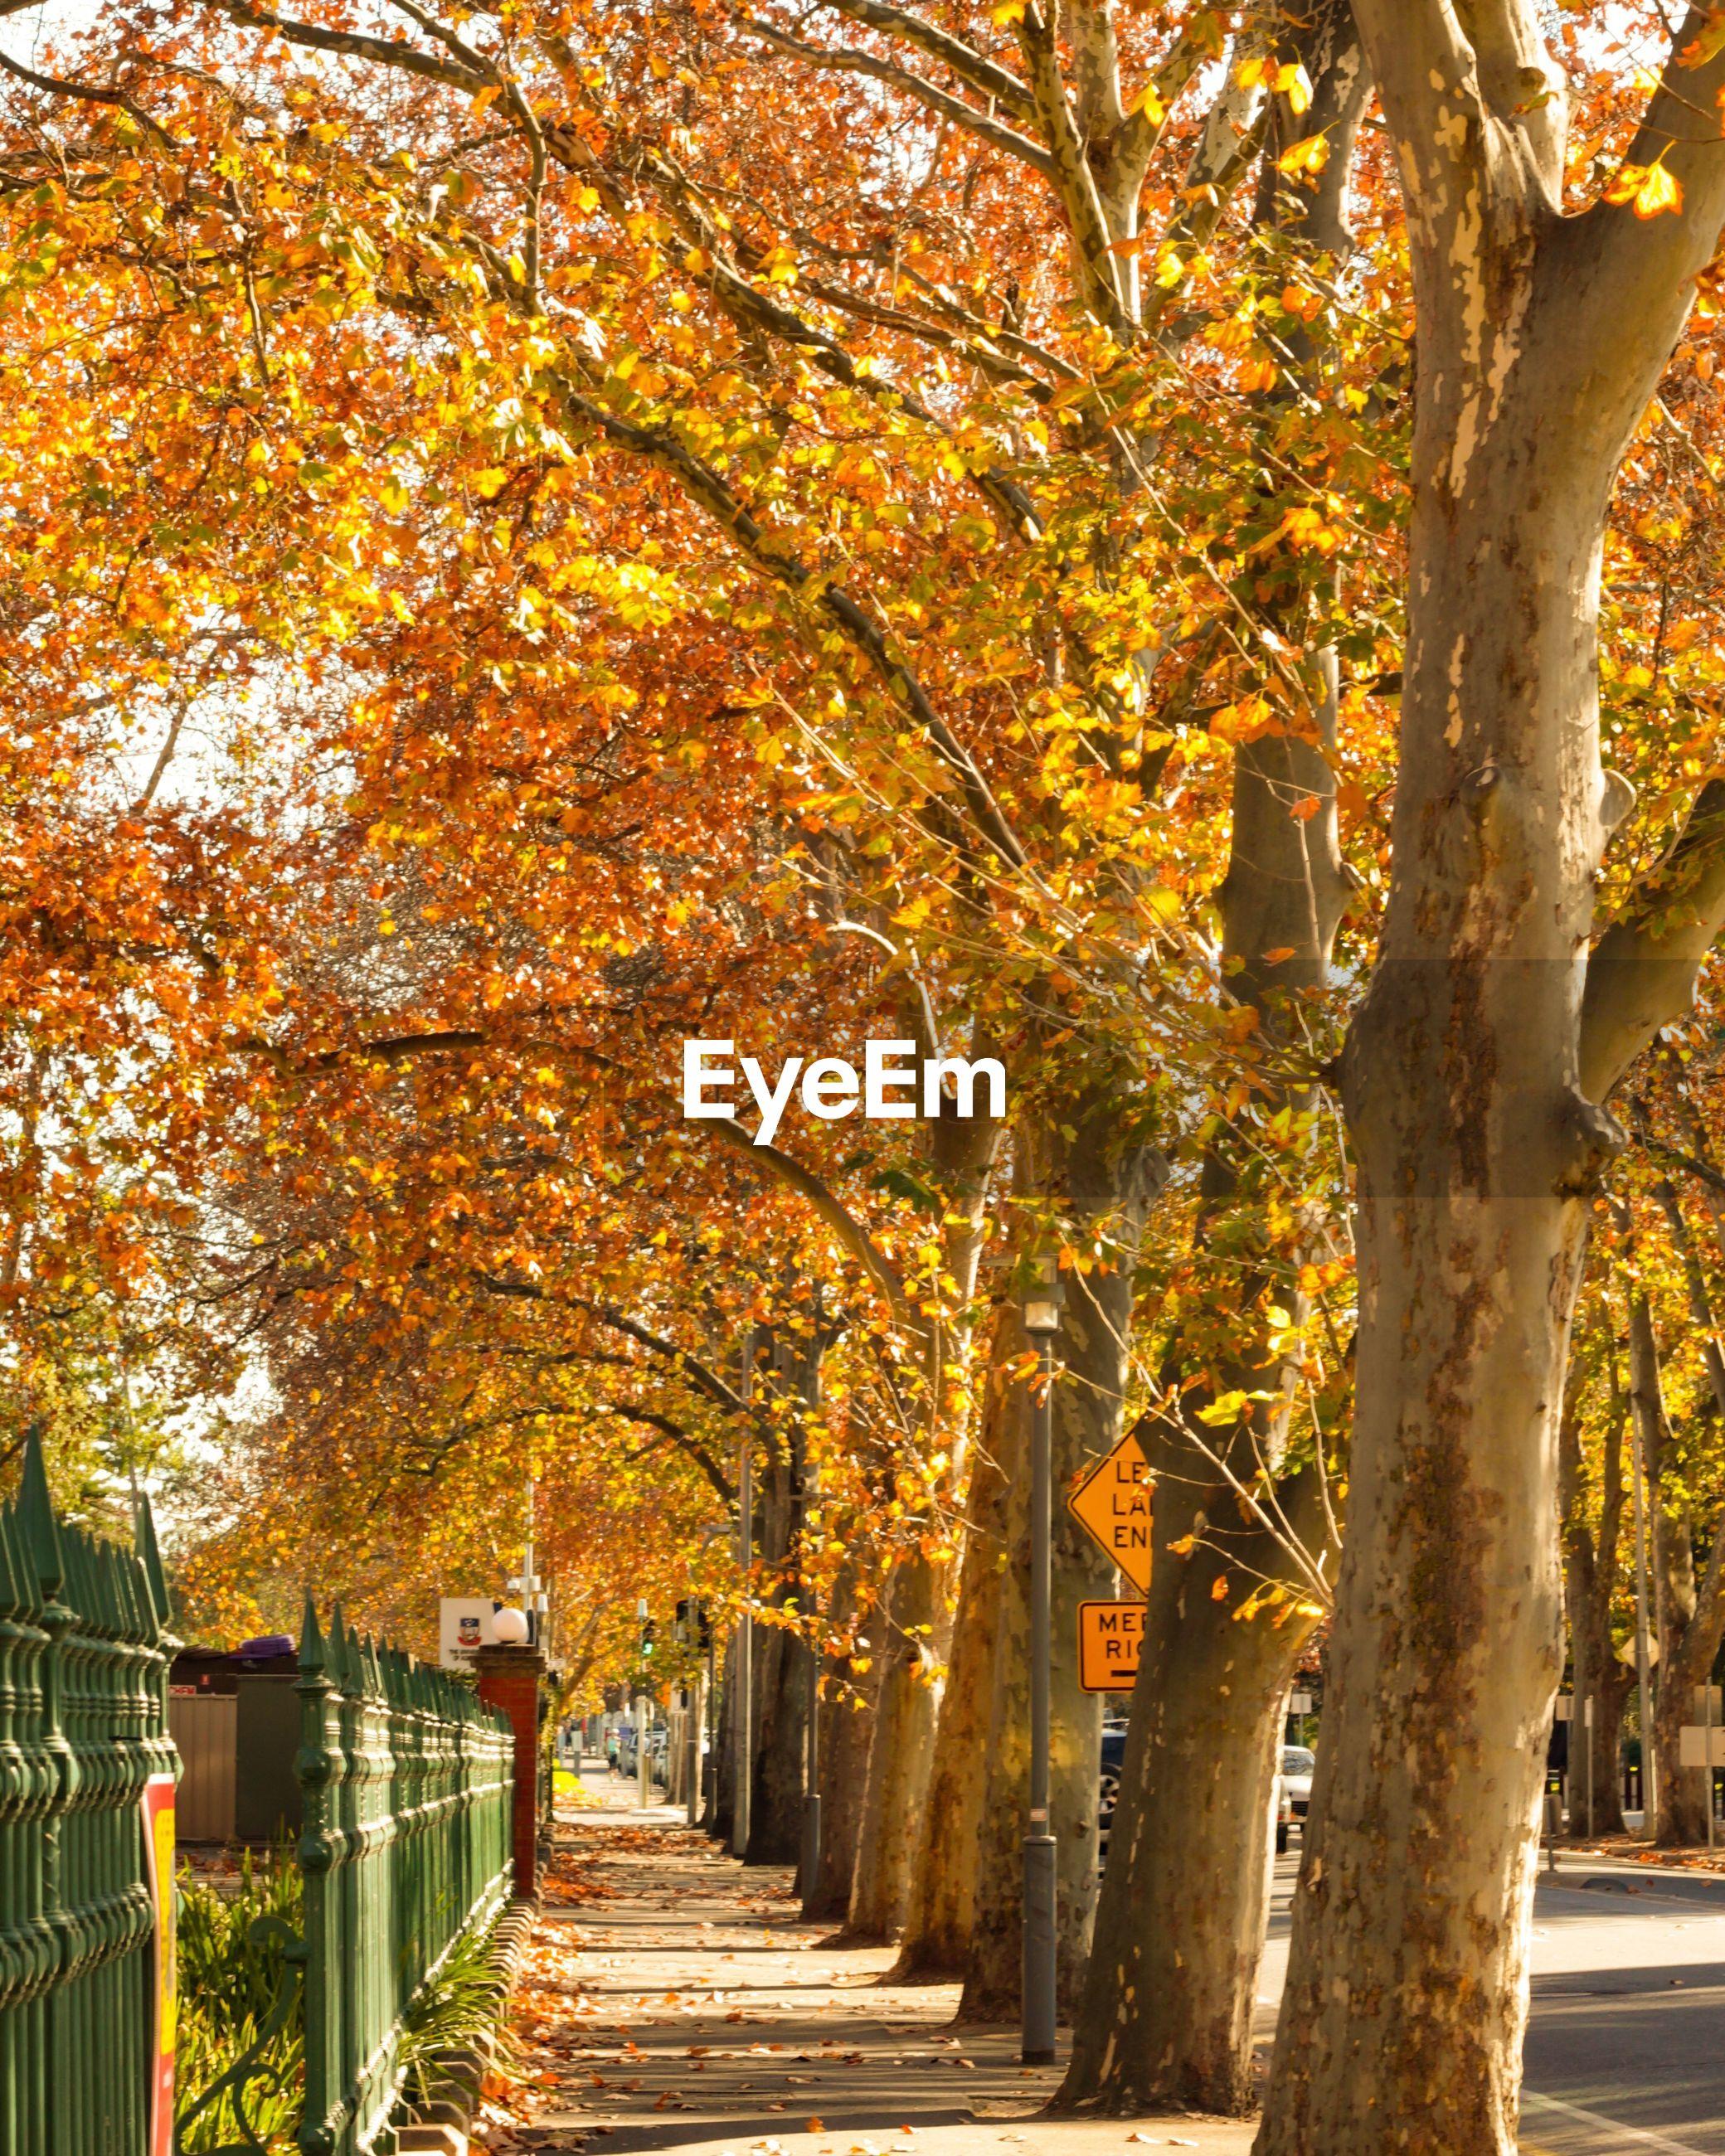 FOOTPATH IN PARK DURING AUTUMN